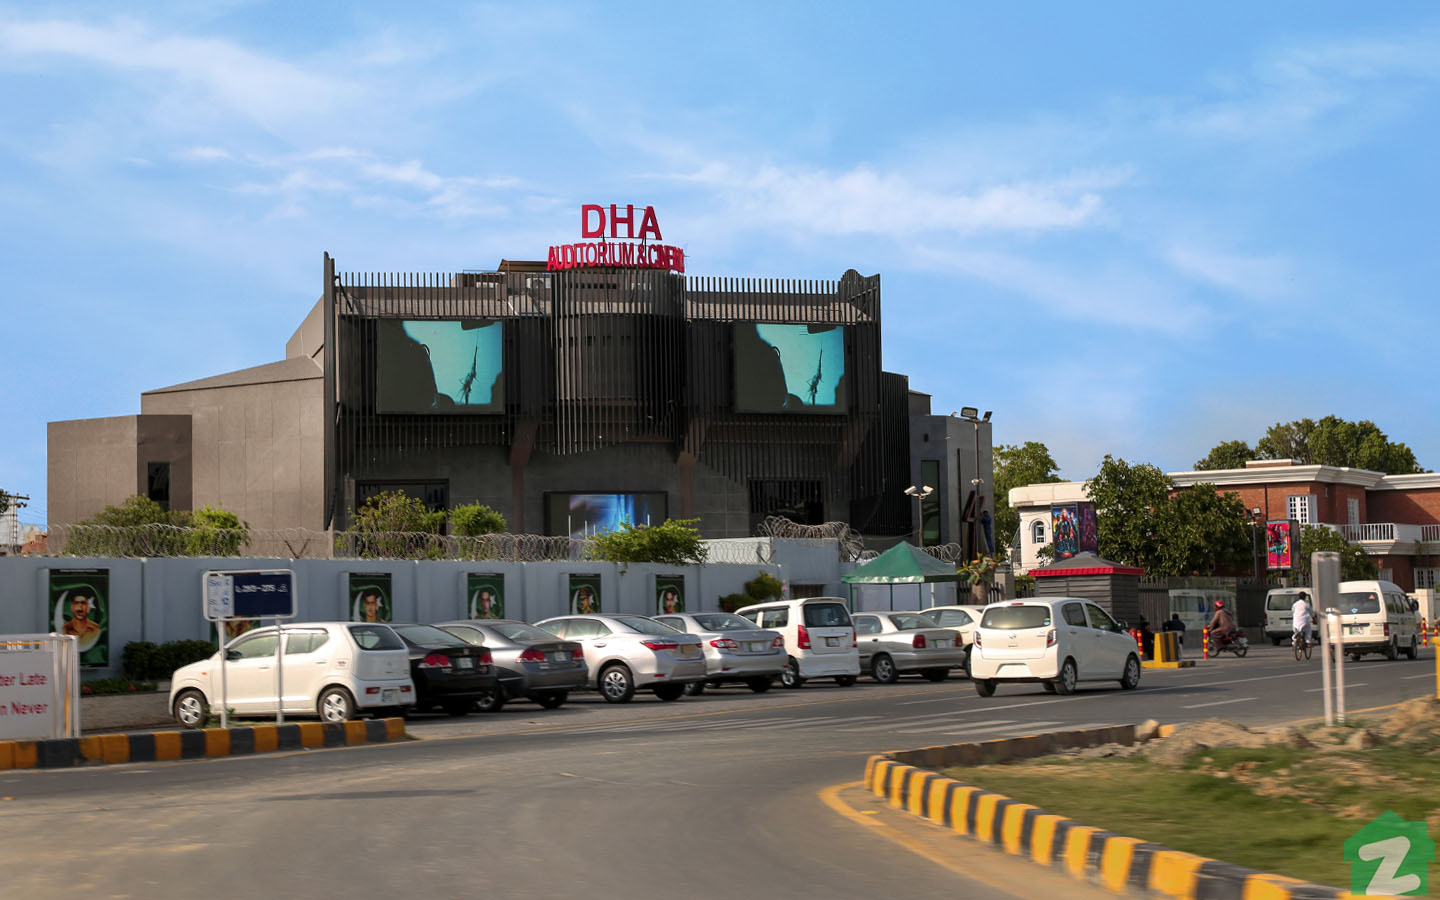 There is the state-of-the-art cinema operational in Phase 5, DHA